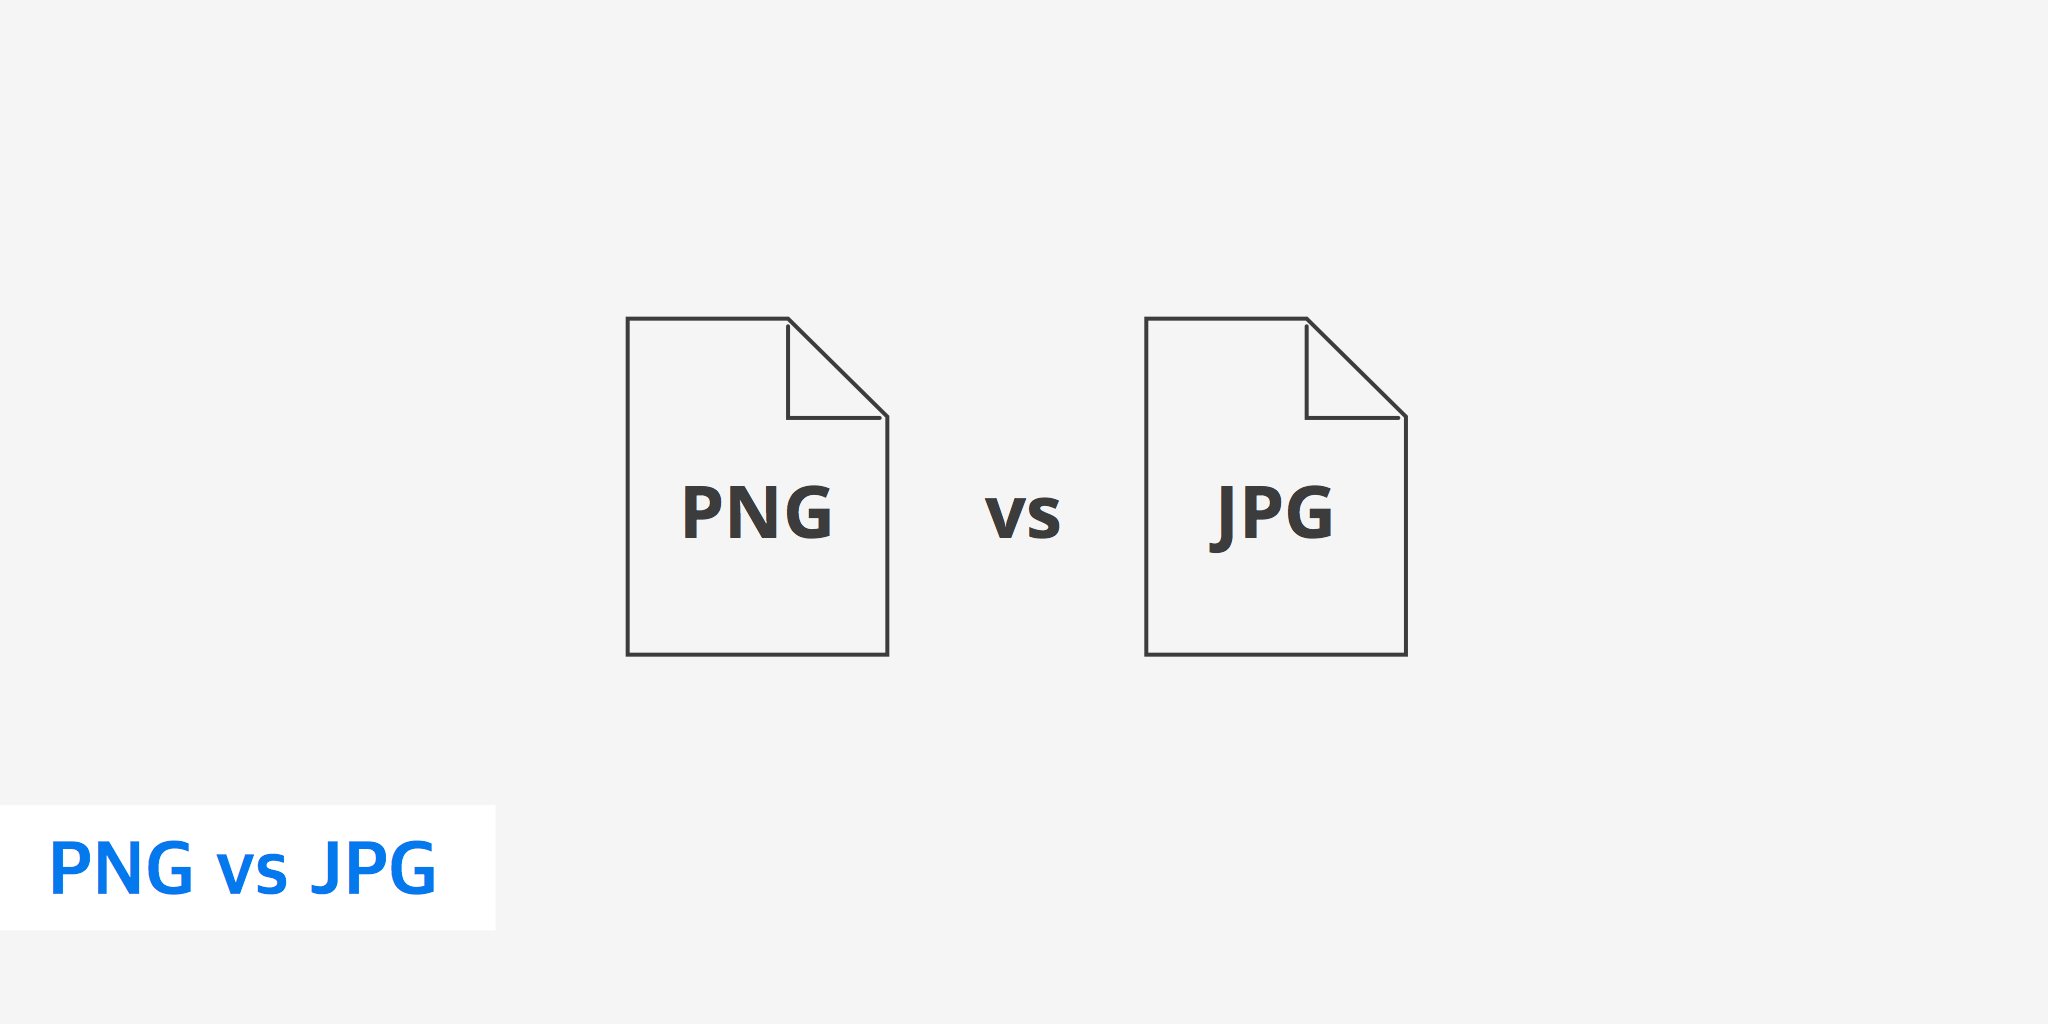 PNG vs JPG Images - What is the Difference? - KeyCDN Support